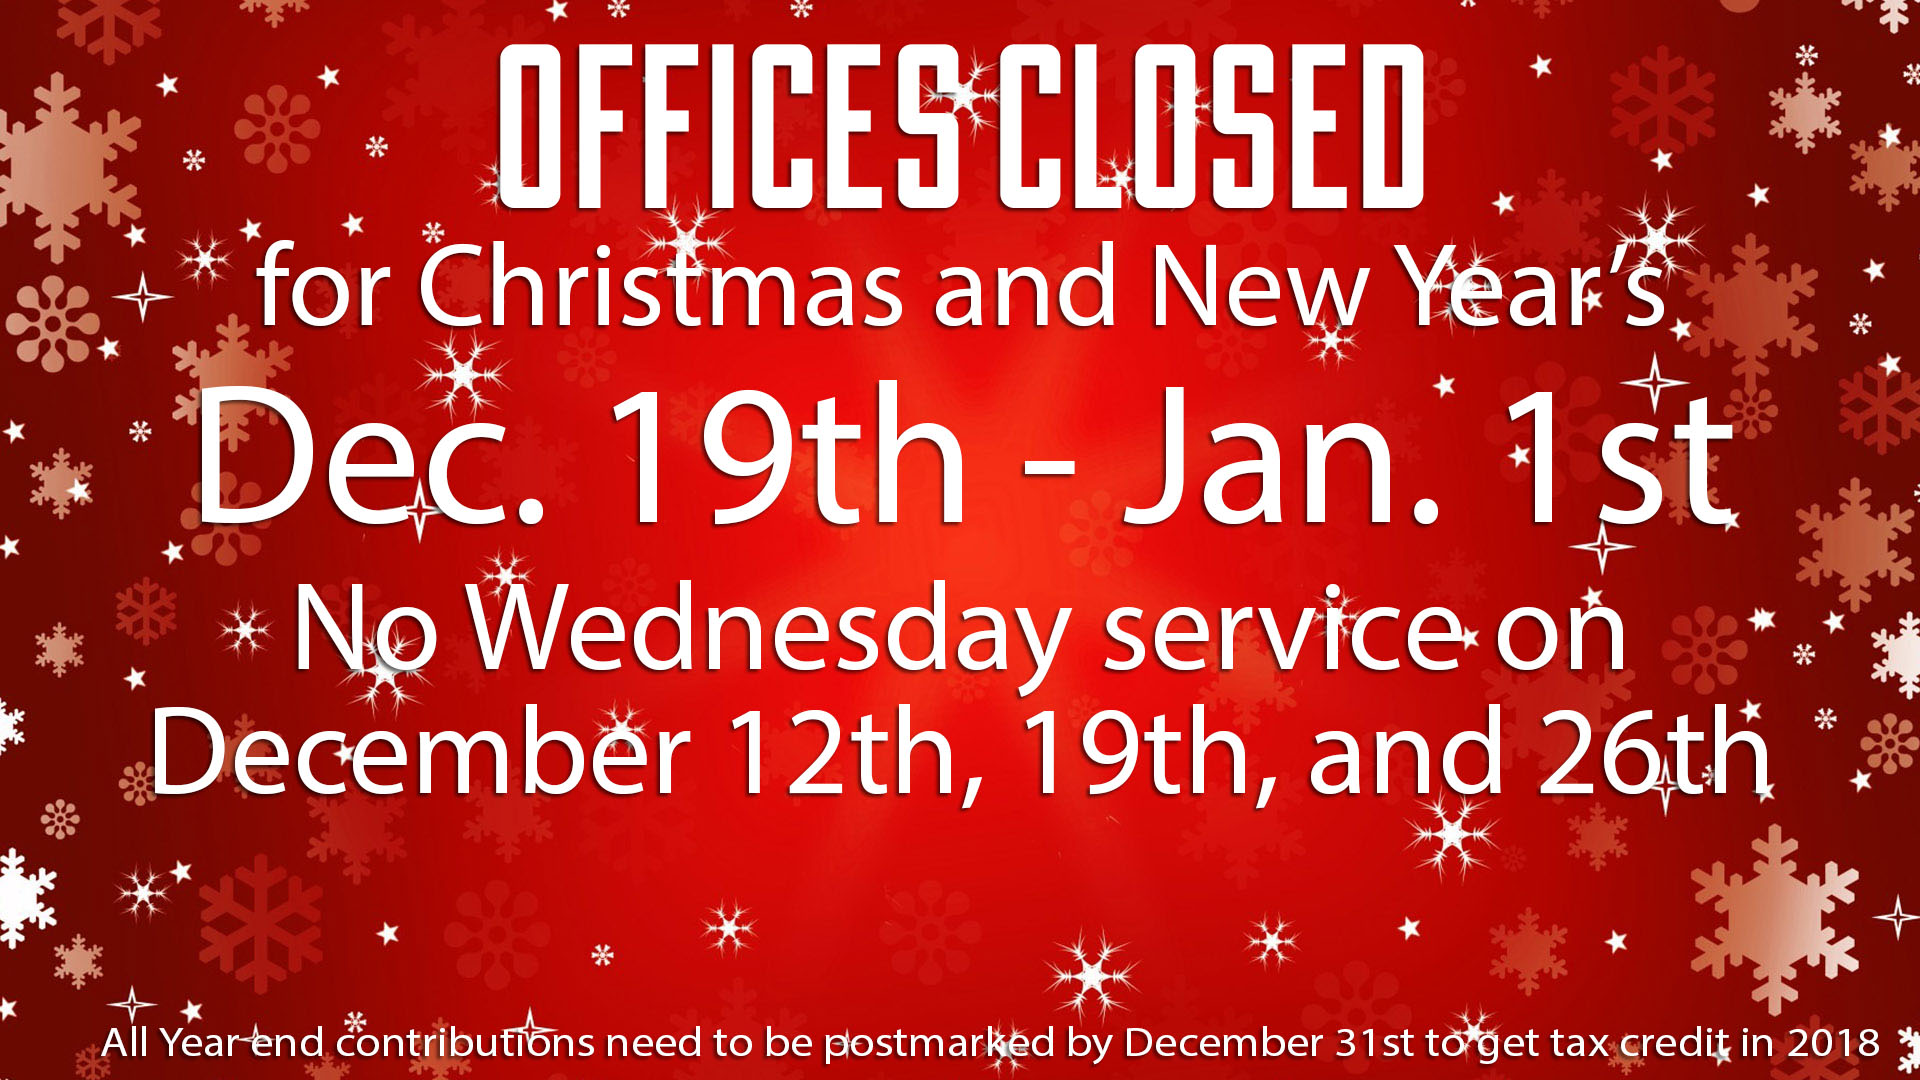 Office_Closed_Christmas2018.jpg